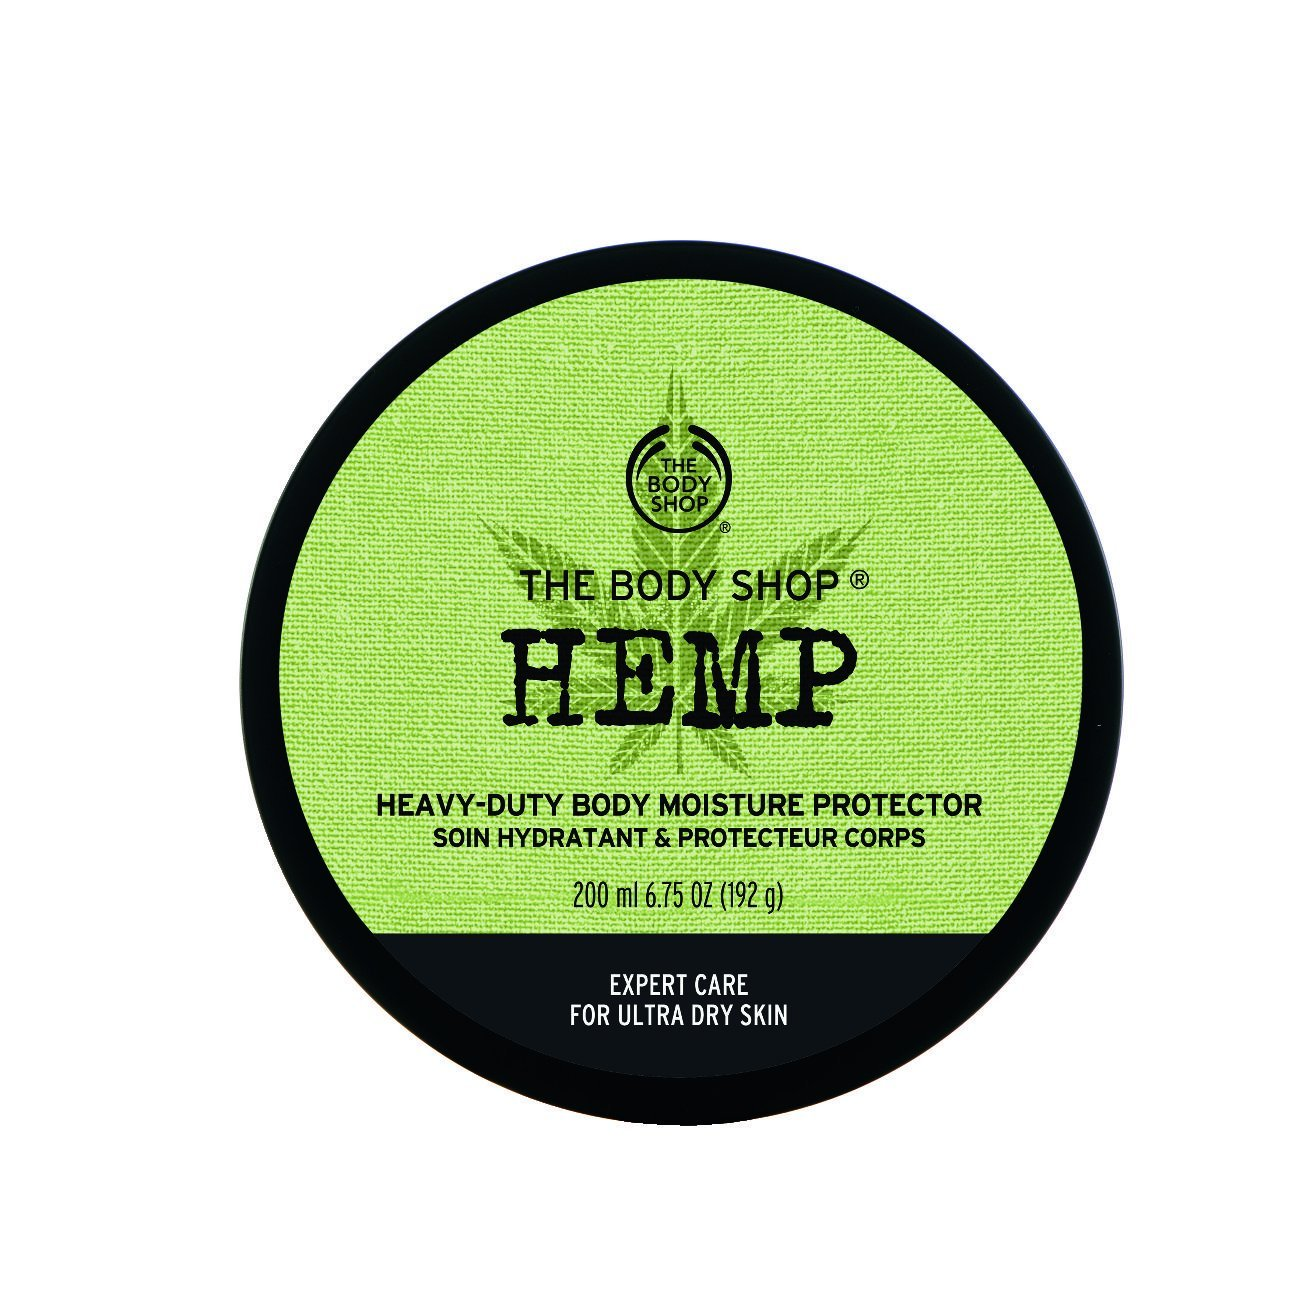 The Body Shop Heavy-Duty Body Moisture Protector, 6.75 Oz by The Body Shop